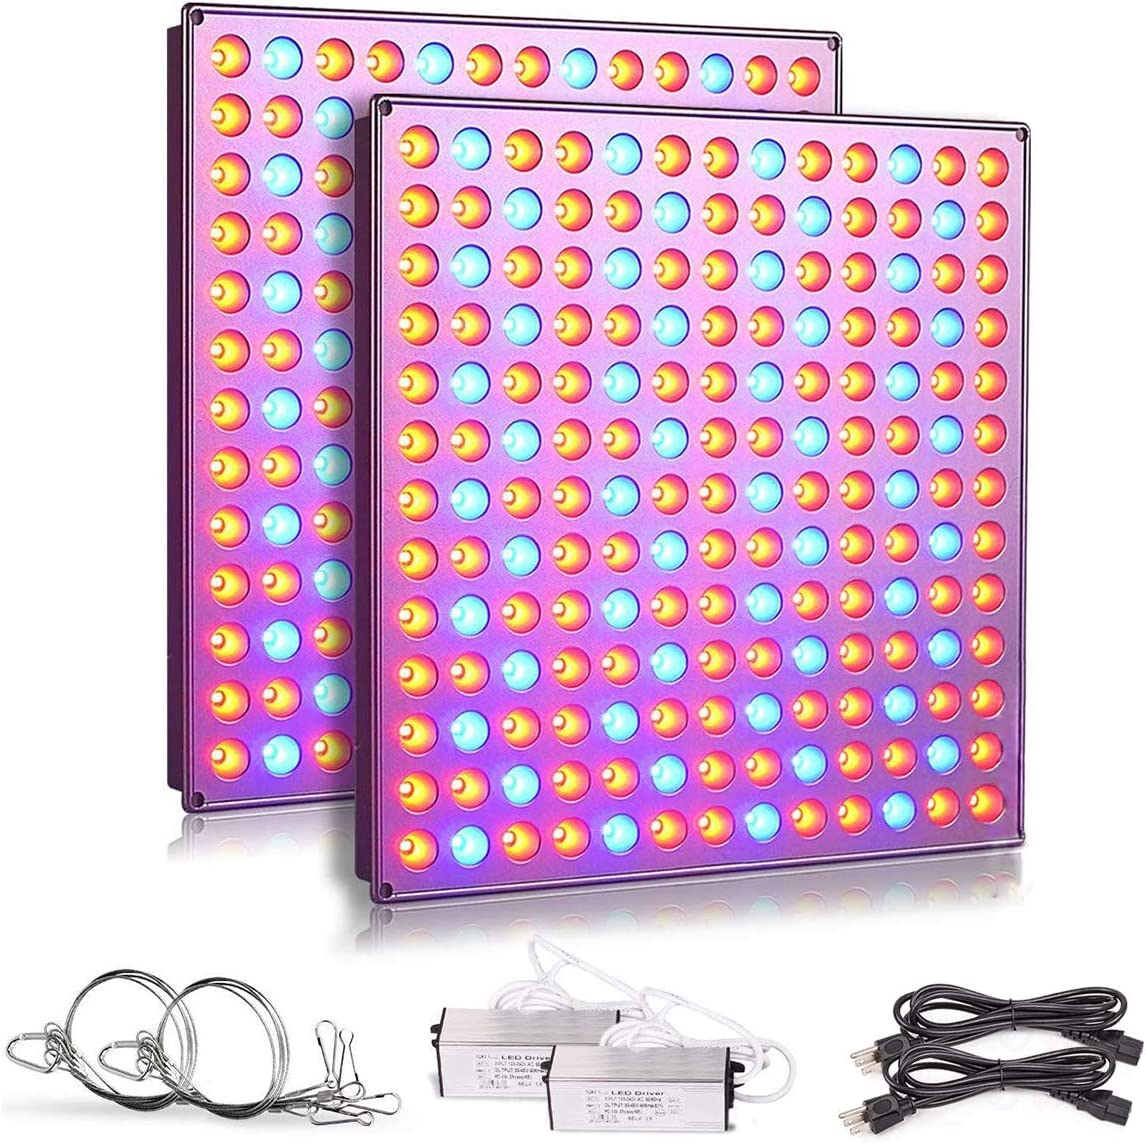 Roleadro LED Grow Lights for Indoor Plants, 75w Plant Lights with Red Blue Spectrum Grow Lamp for Hydroponic, Seedling, Succulents, Veg and Flower 2 Packs